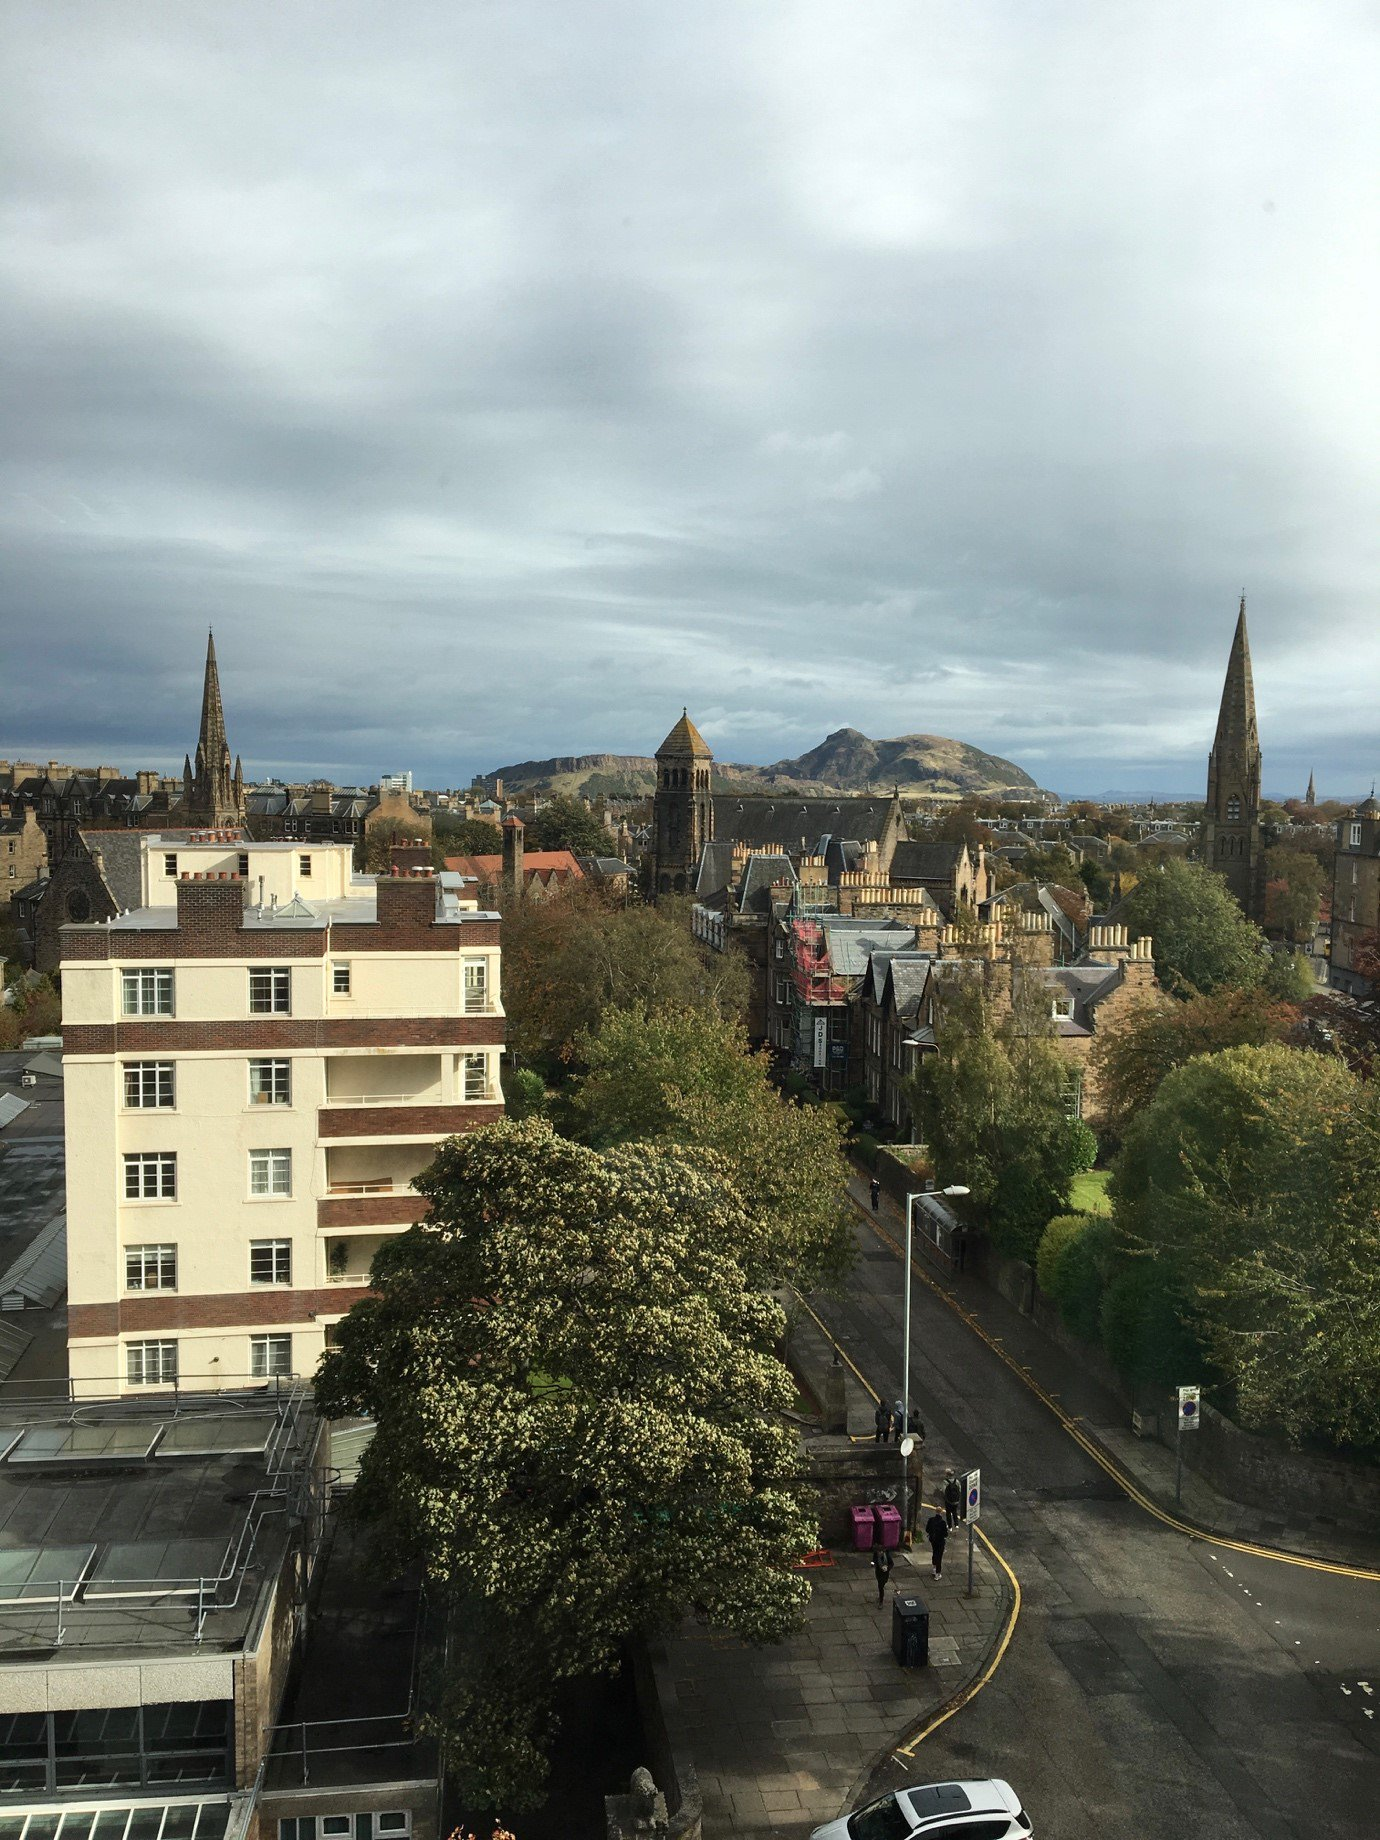 (View of Edinburgh from Edinburgh Napier University-Arthur's Seat in the background)